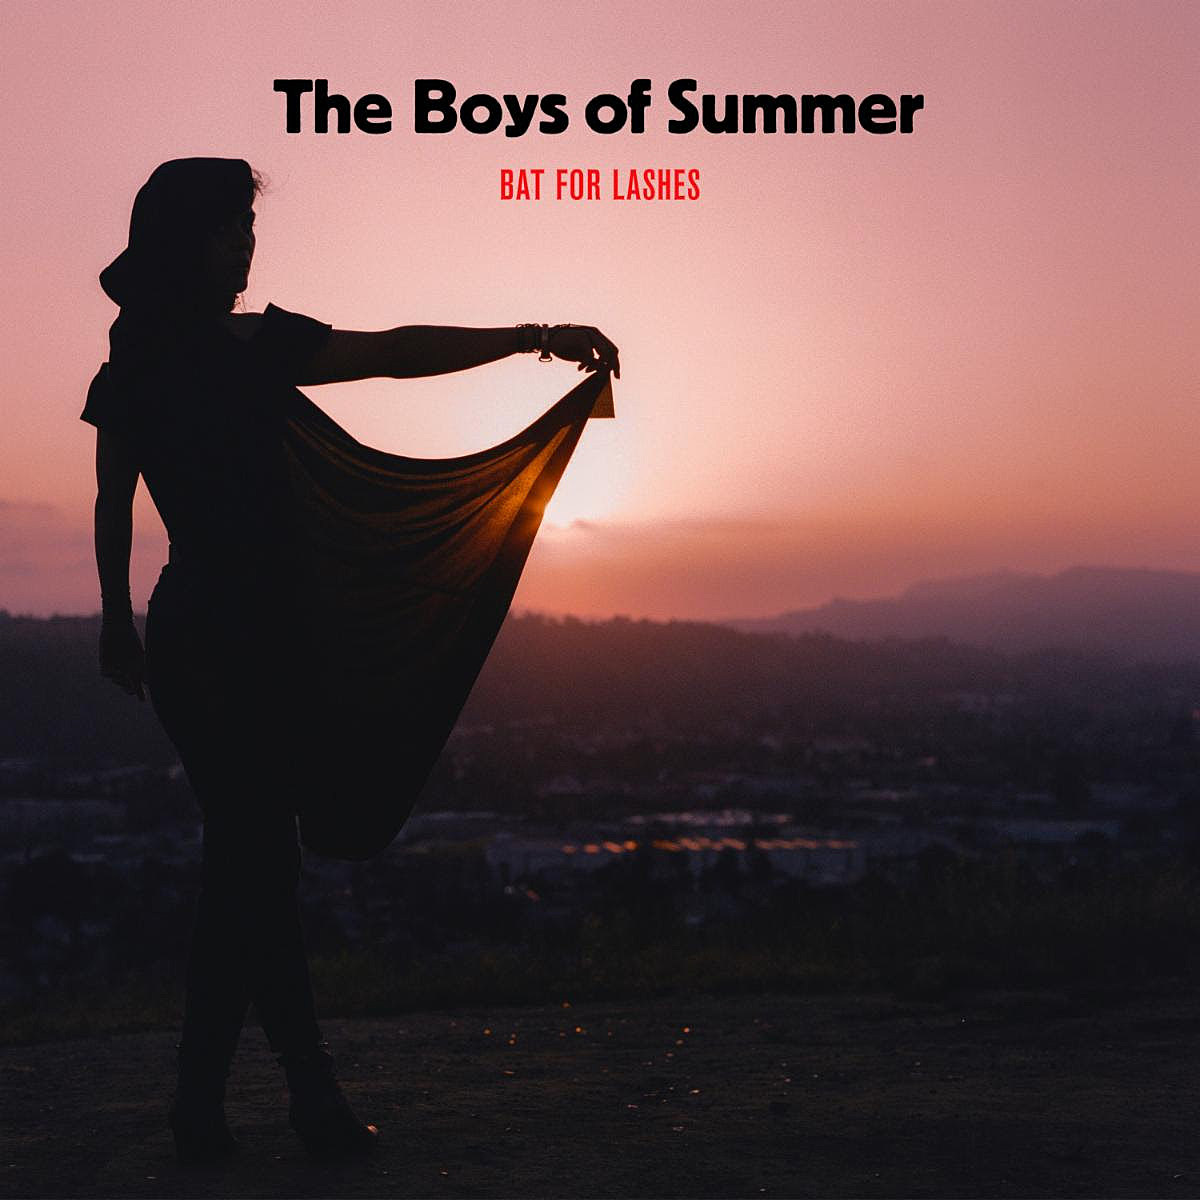 Bat for Lashes - The Boys of Summer